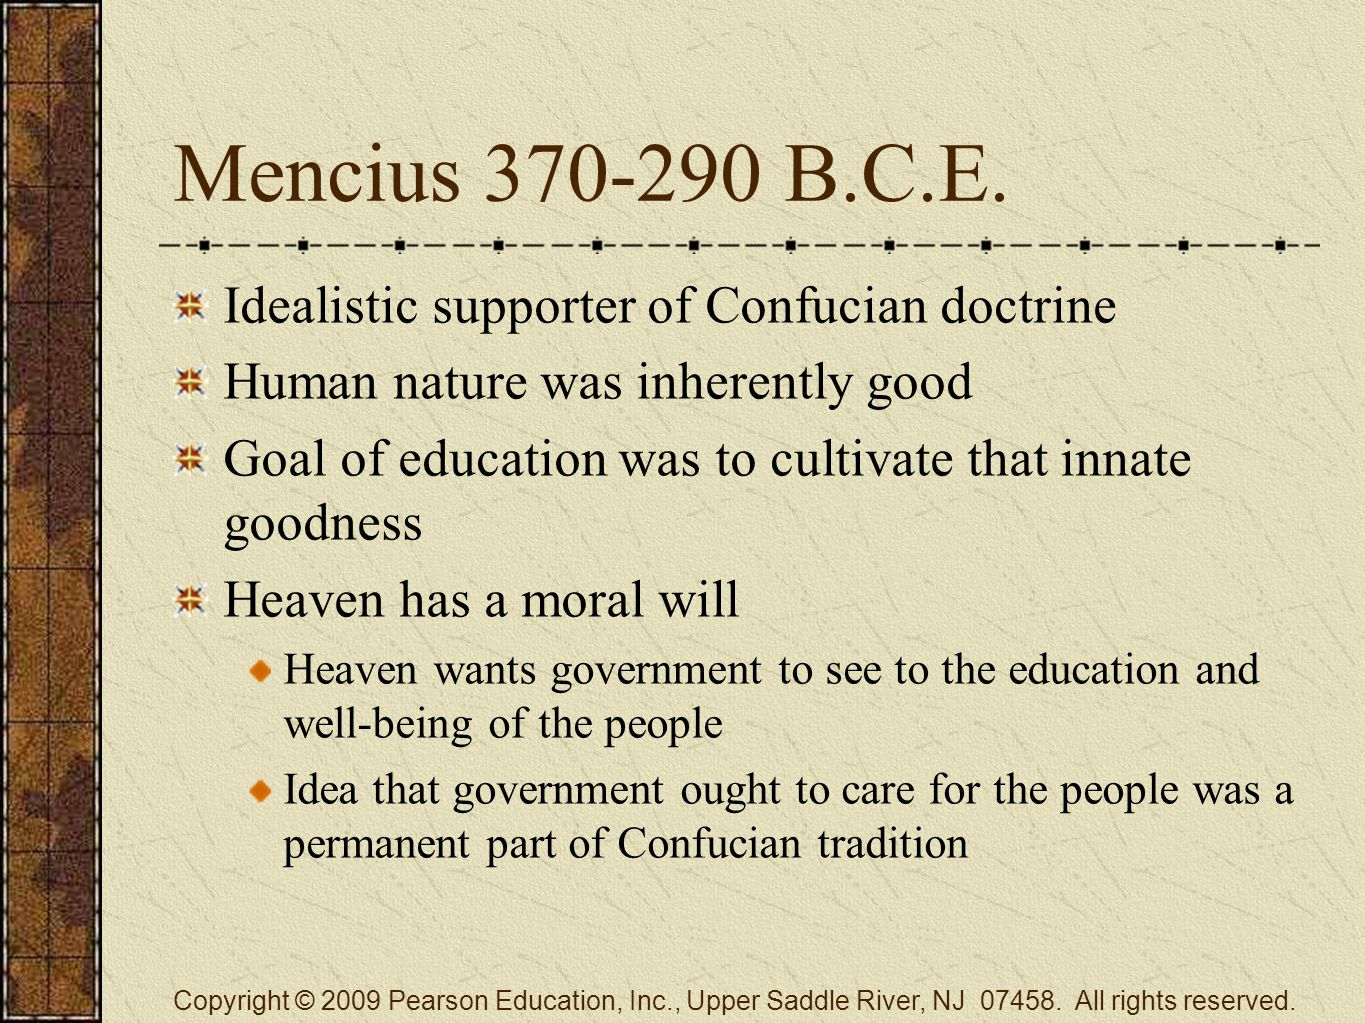 Mencius 370-290 B.C.E. Idealistic supporter of Confucian doctrine Human nature was inherently good Goal of education was to cultivate that innate good